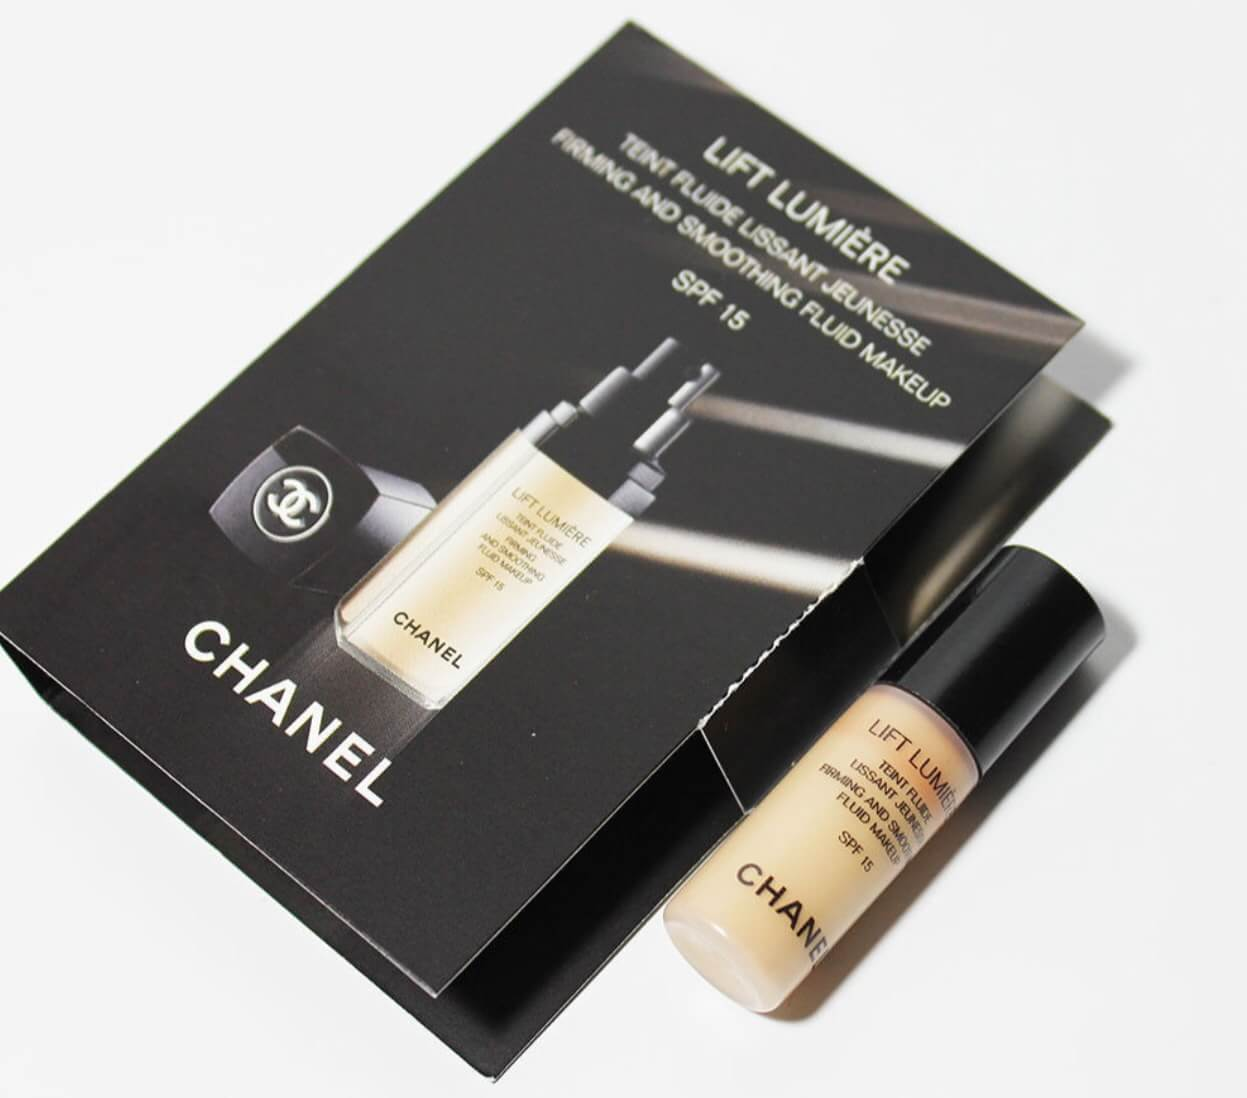 CHANEL LIFT LUMIERE Firming and Smoothing Fluid Makeup SPF15 2.5ml #20 Clair สำหรับผิวขาว-กลาง